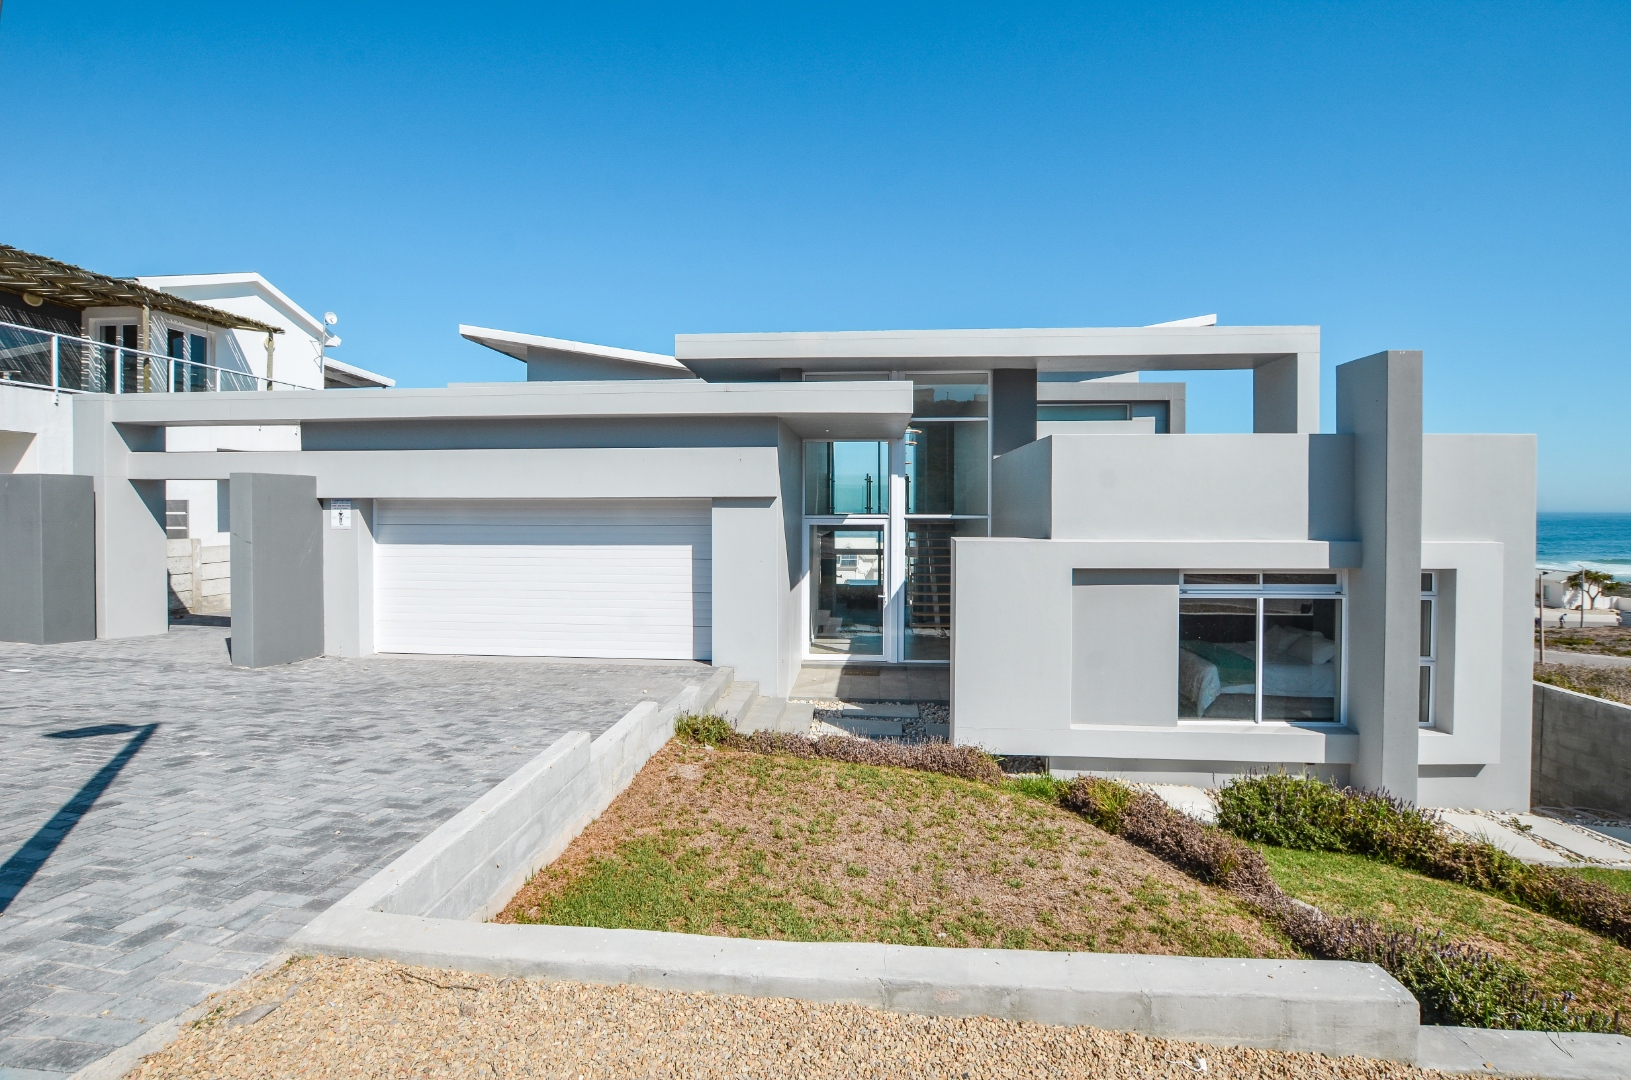 4 Bedroom House For Sale in Yzerfontein